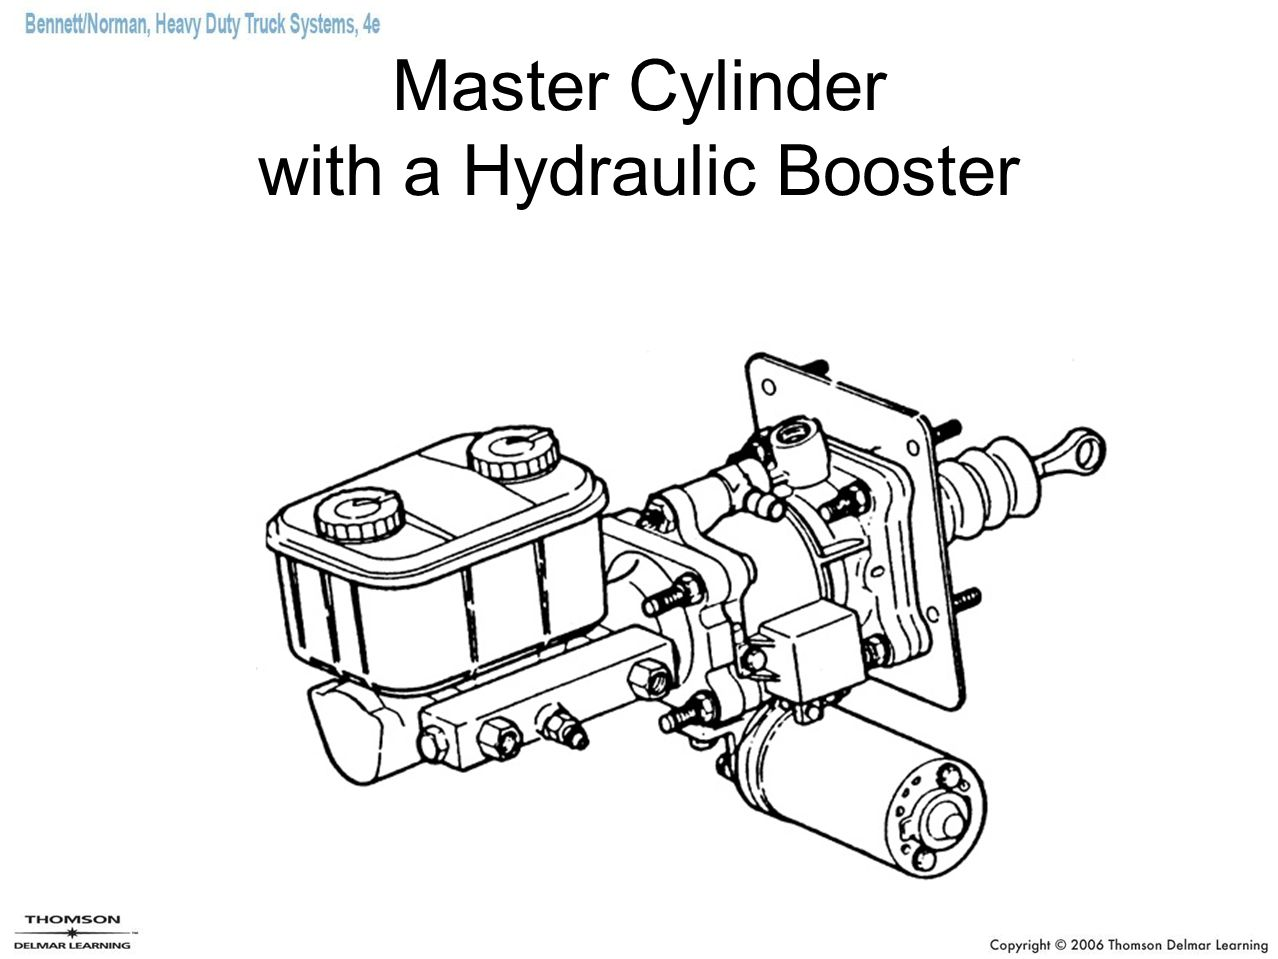 Master Cylinder with a Hydraulic Booster